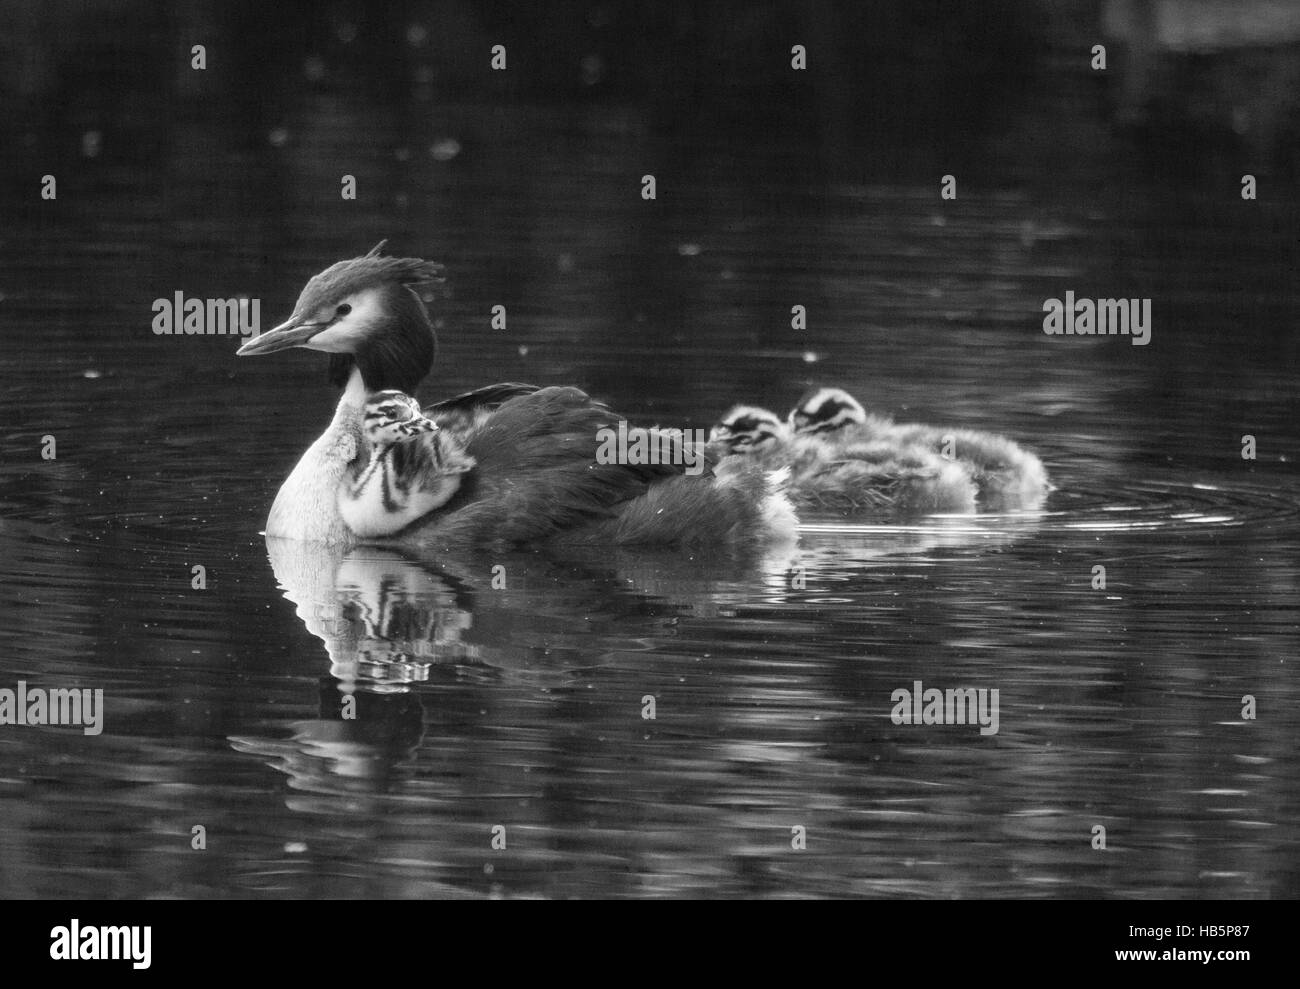 Great crested grebe - Stock Image